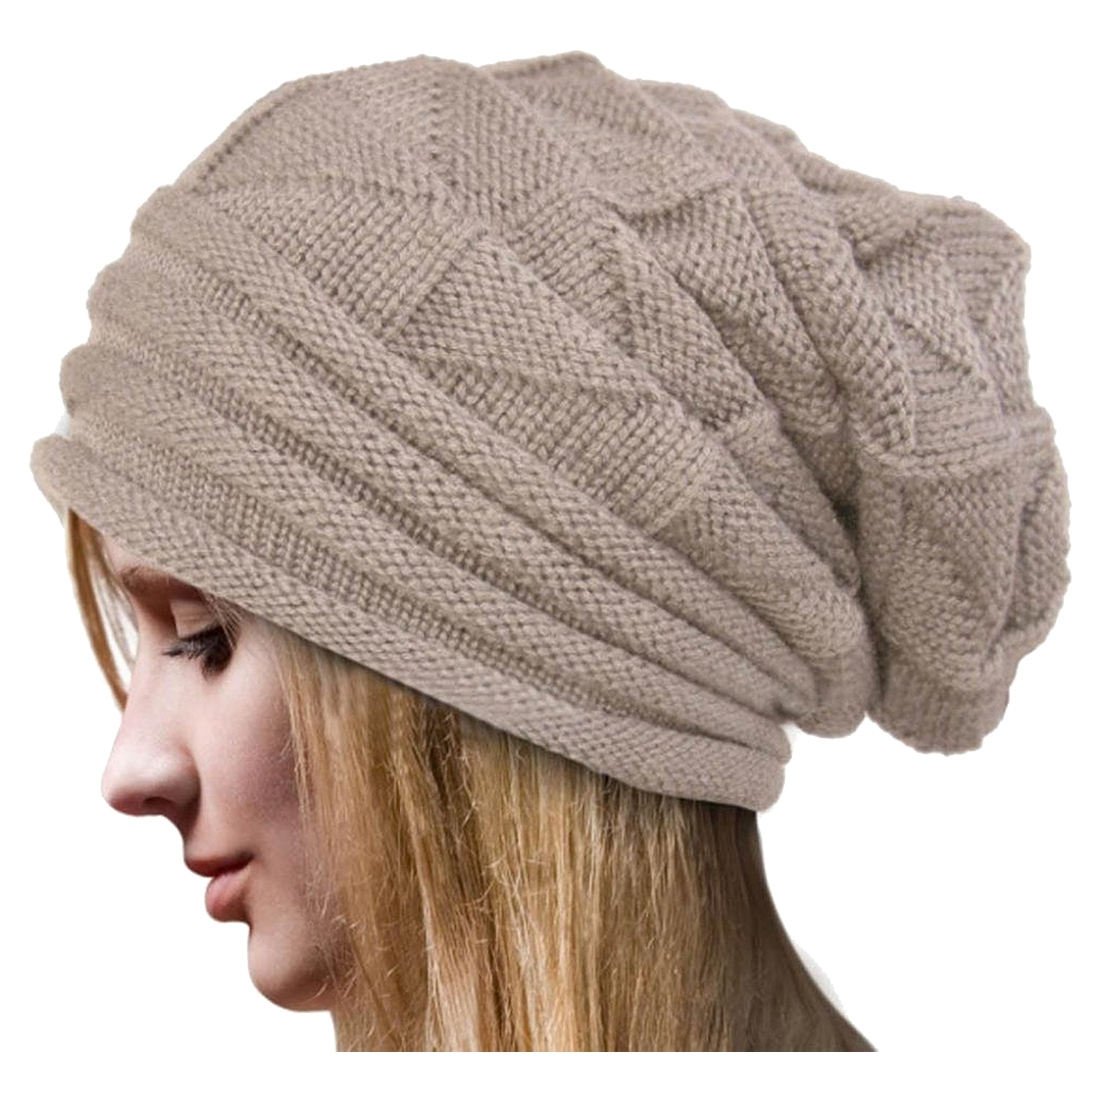 Women Winter Crochet Hat Ski woolen yarn Knit Beanie Warm Caps Oversized, Beige